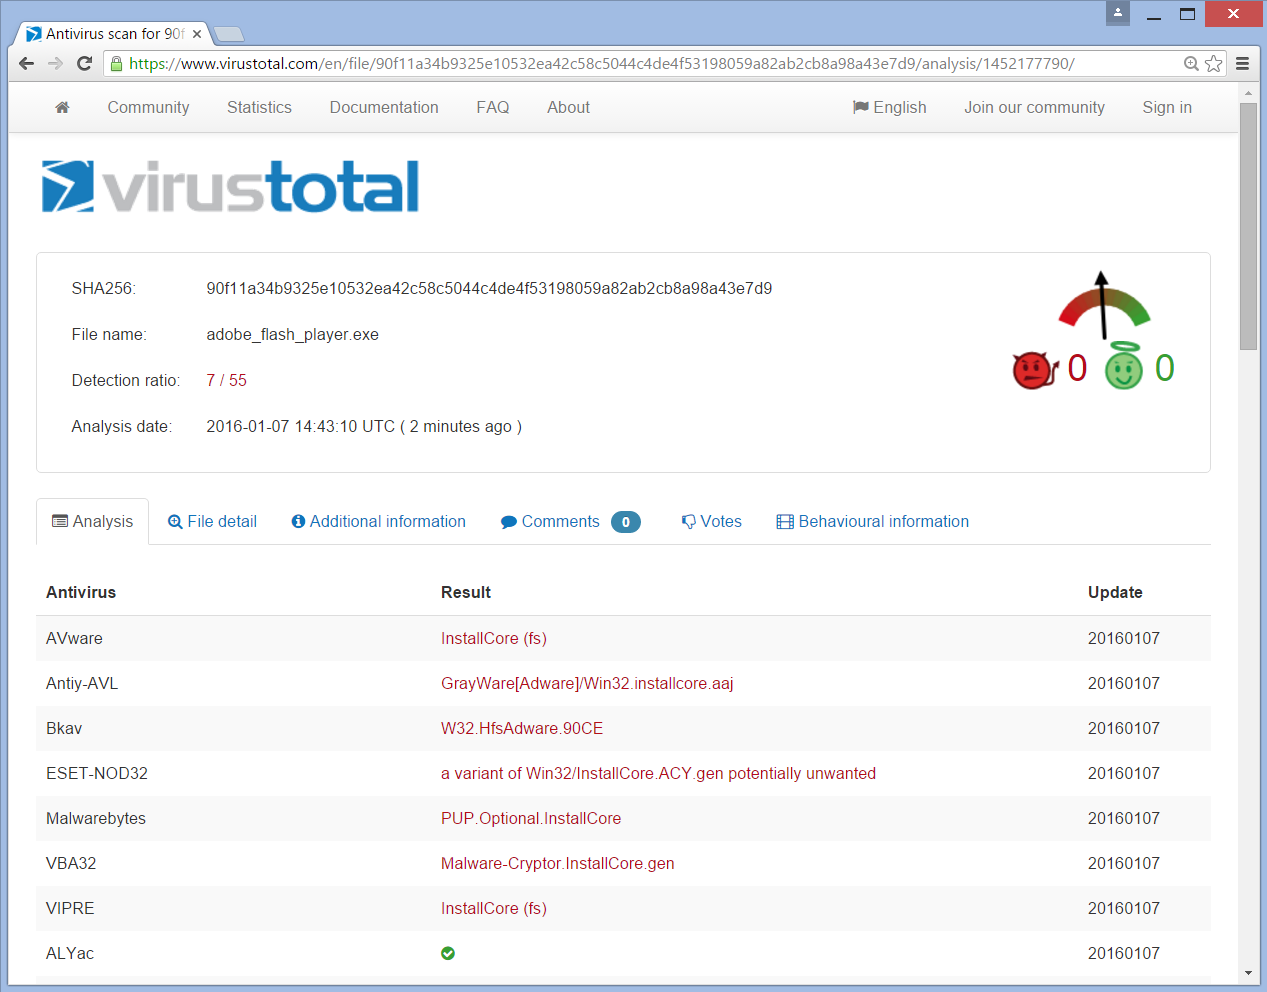 SensorsTechForum-travel-giga-adware-virustotal